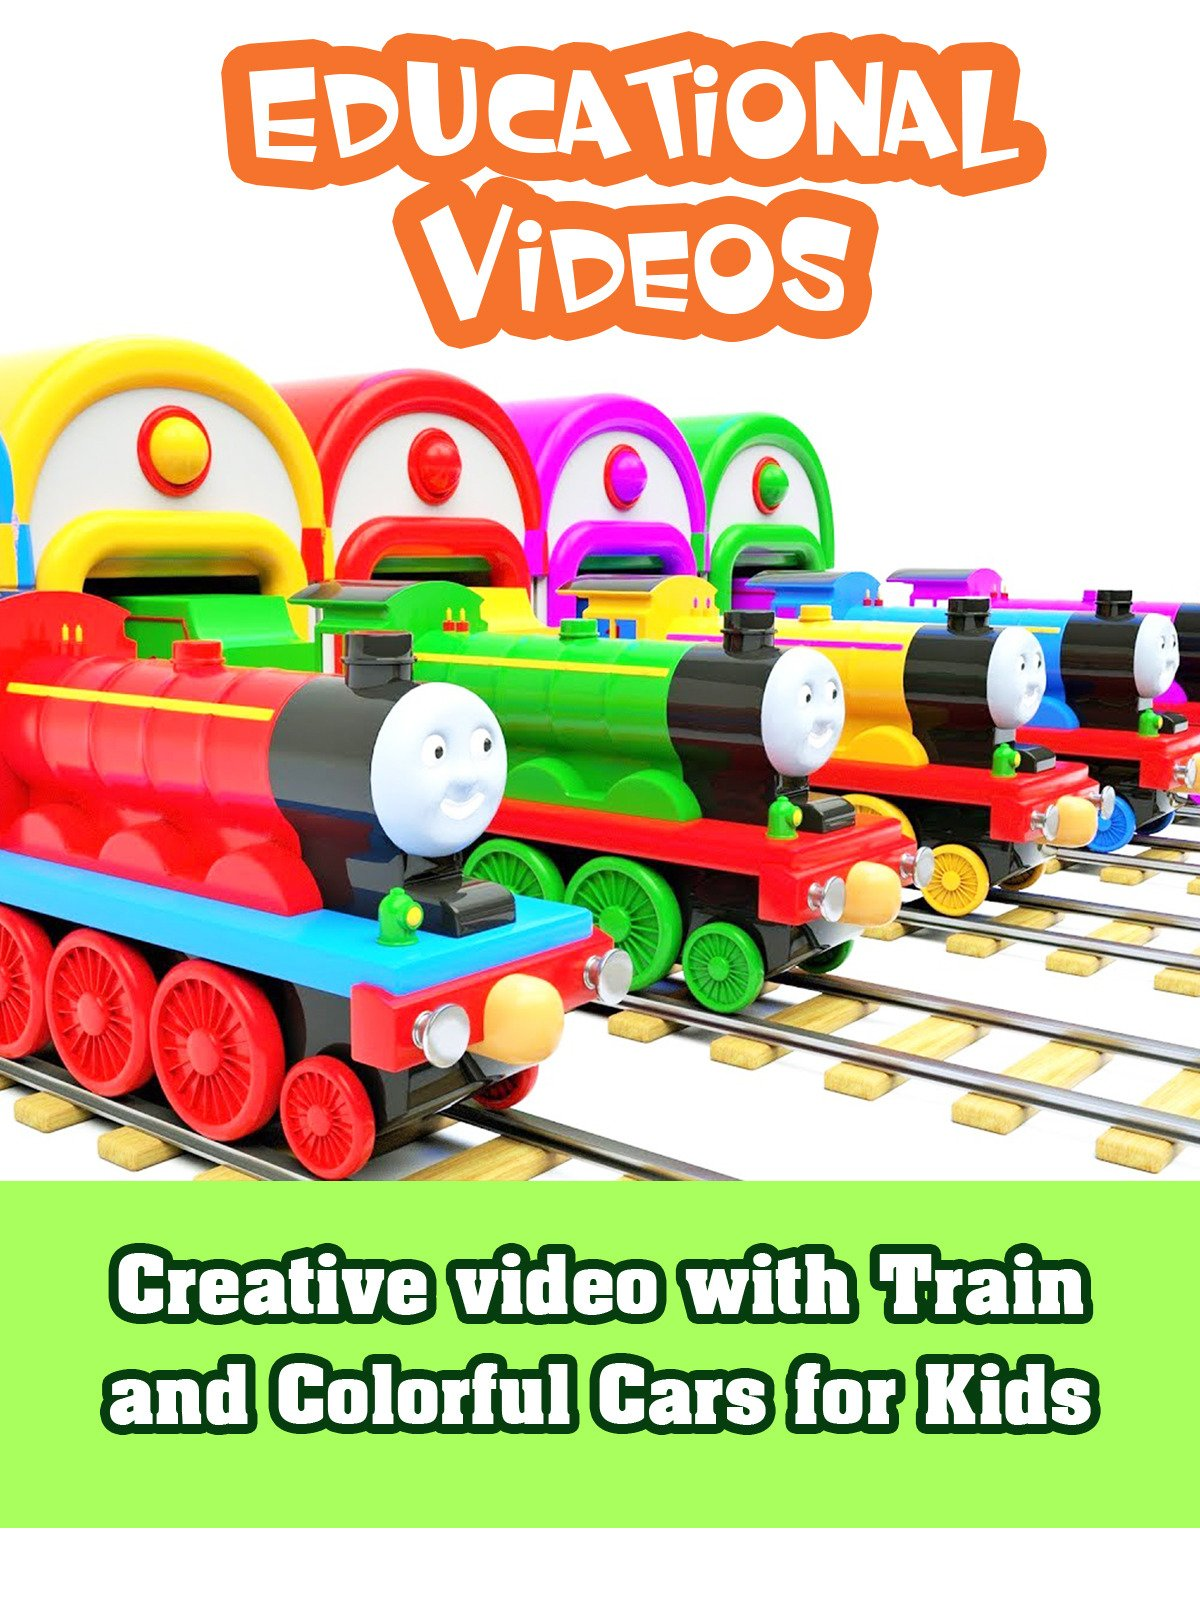 Creative video with Train and Colorful Cars for Kids